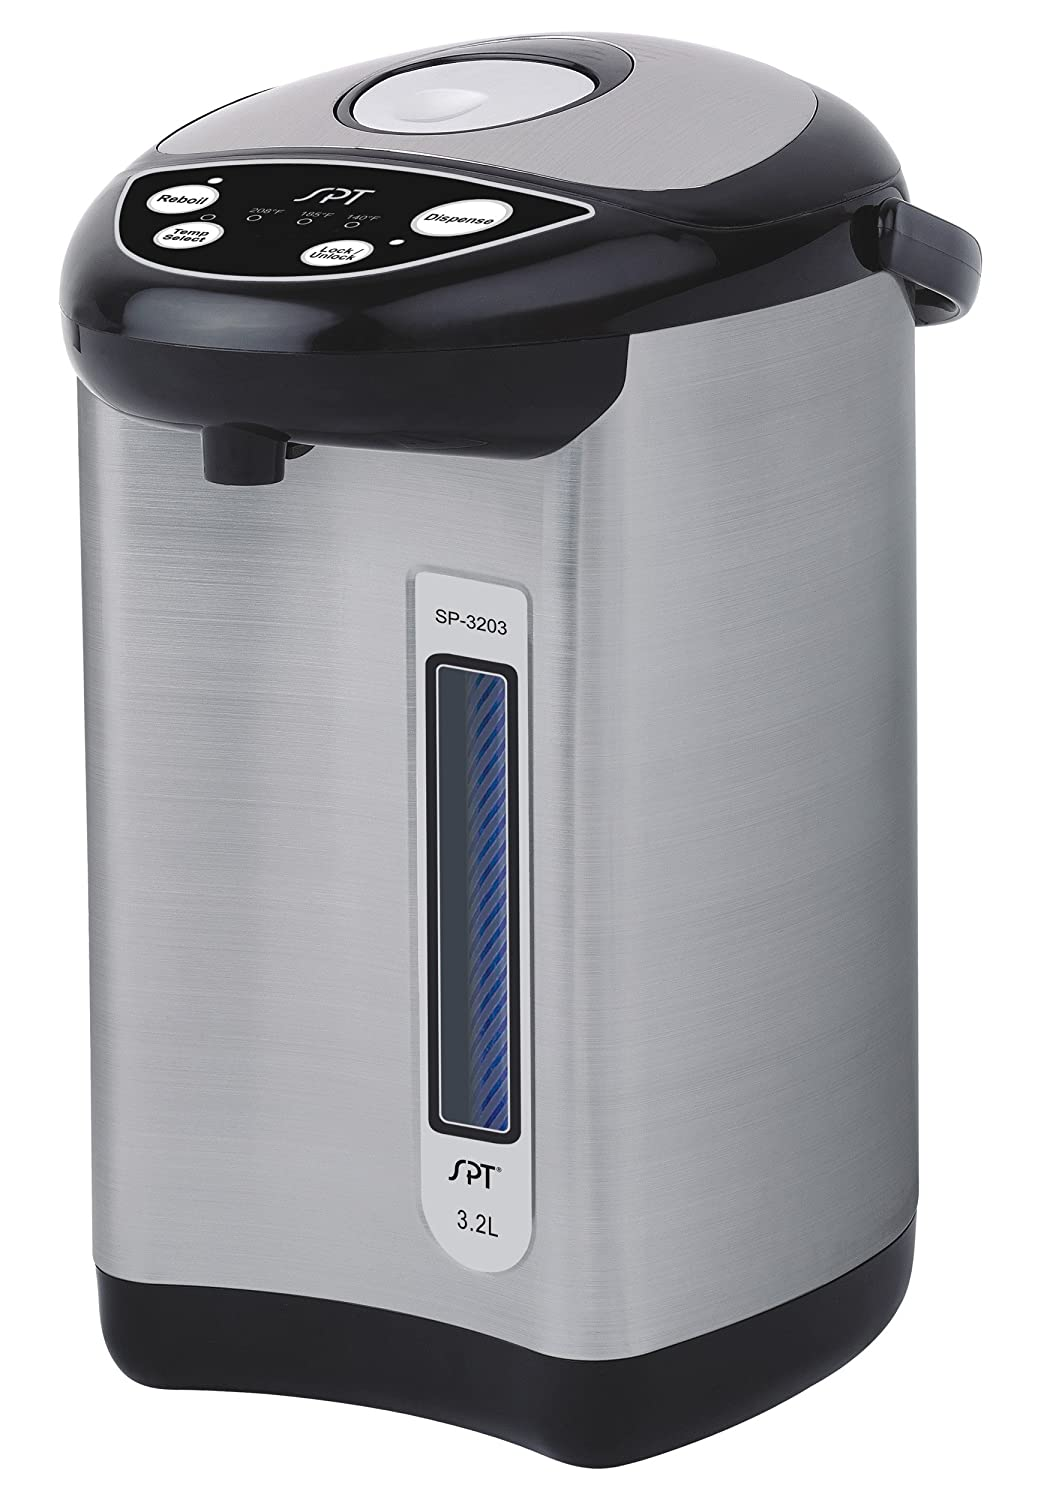 Spt 3.2-Liter Stainless with Multi-Temp Feature Sunpentown SP-3203